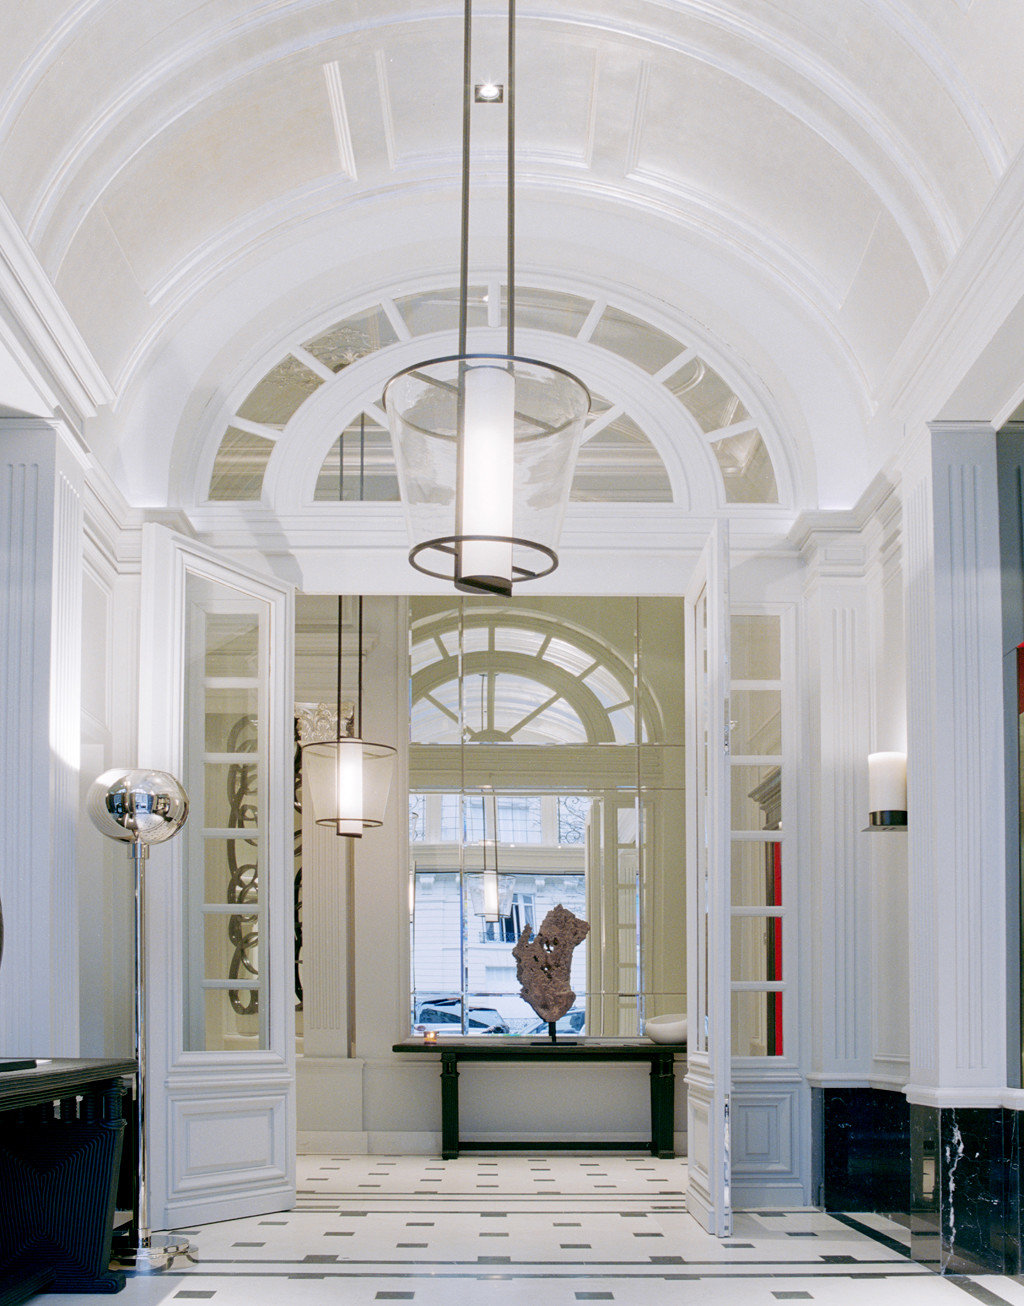 Boutique City Elegant France Hotels Lobby Luxury Paris Architecture daylighting home lighting white hall living room arch glass column